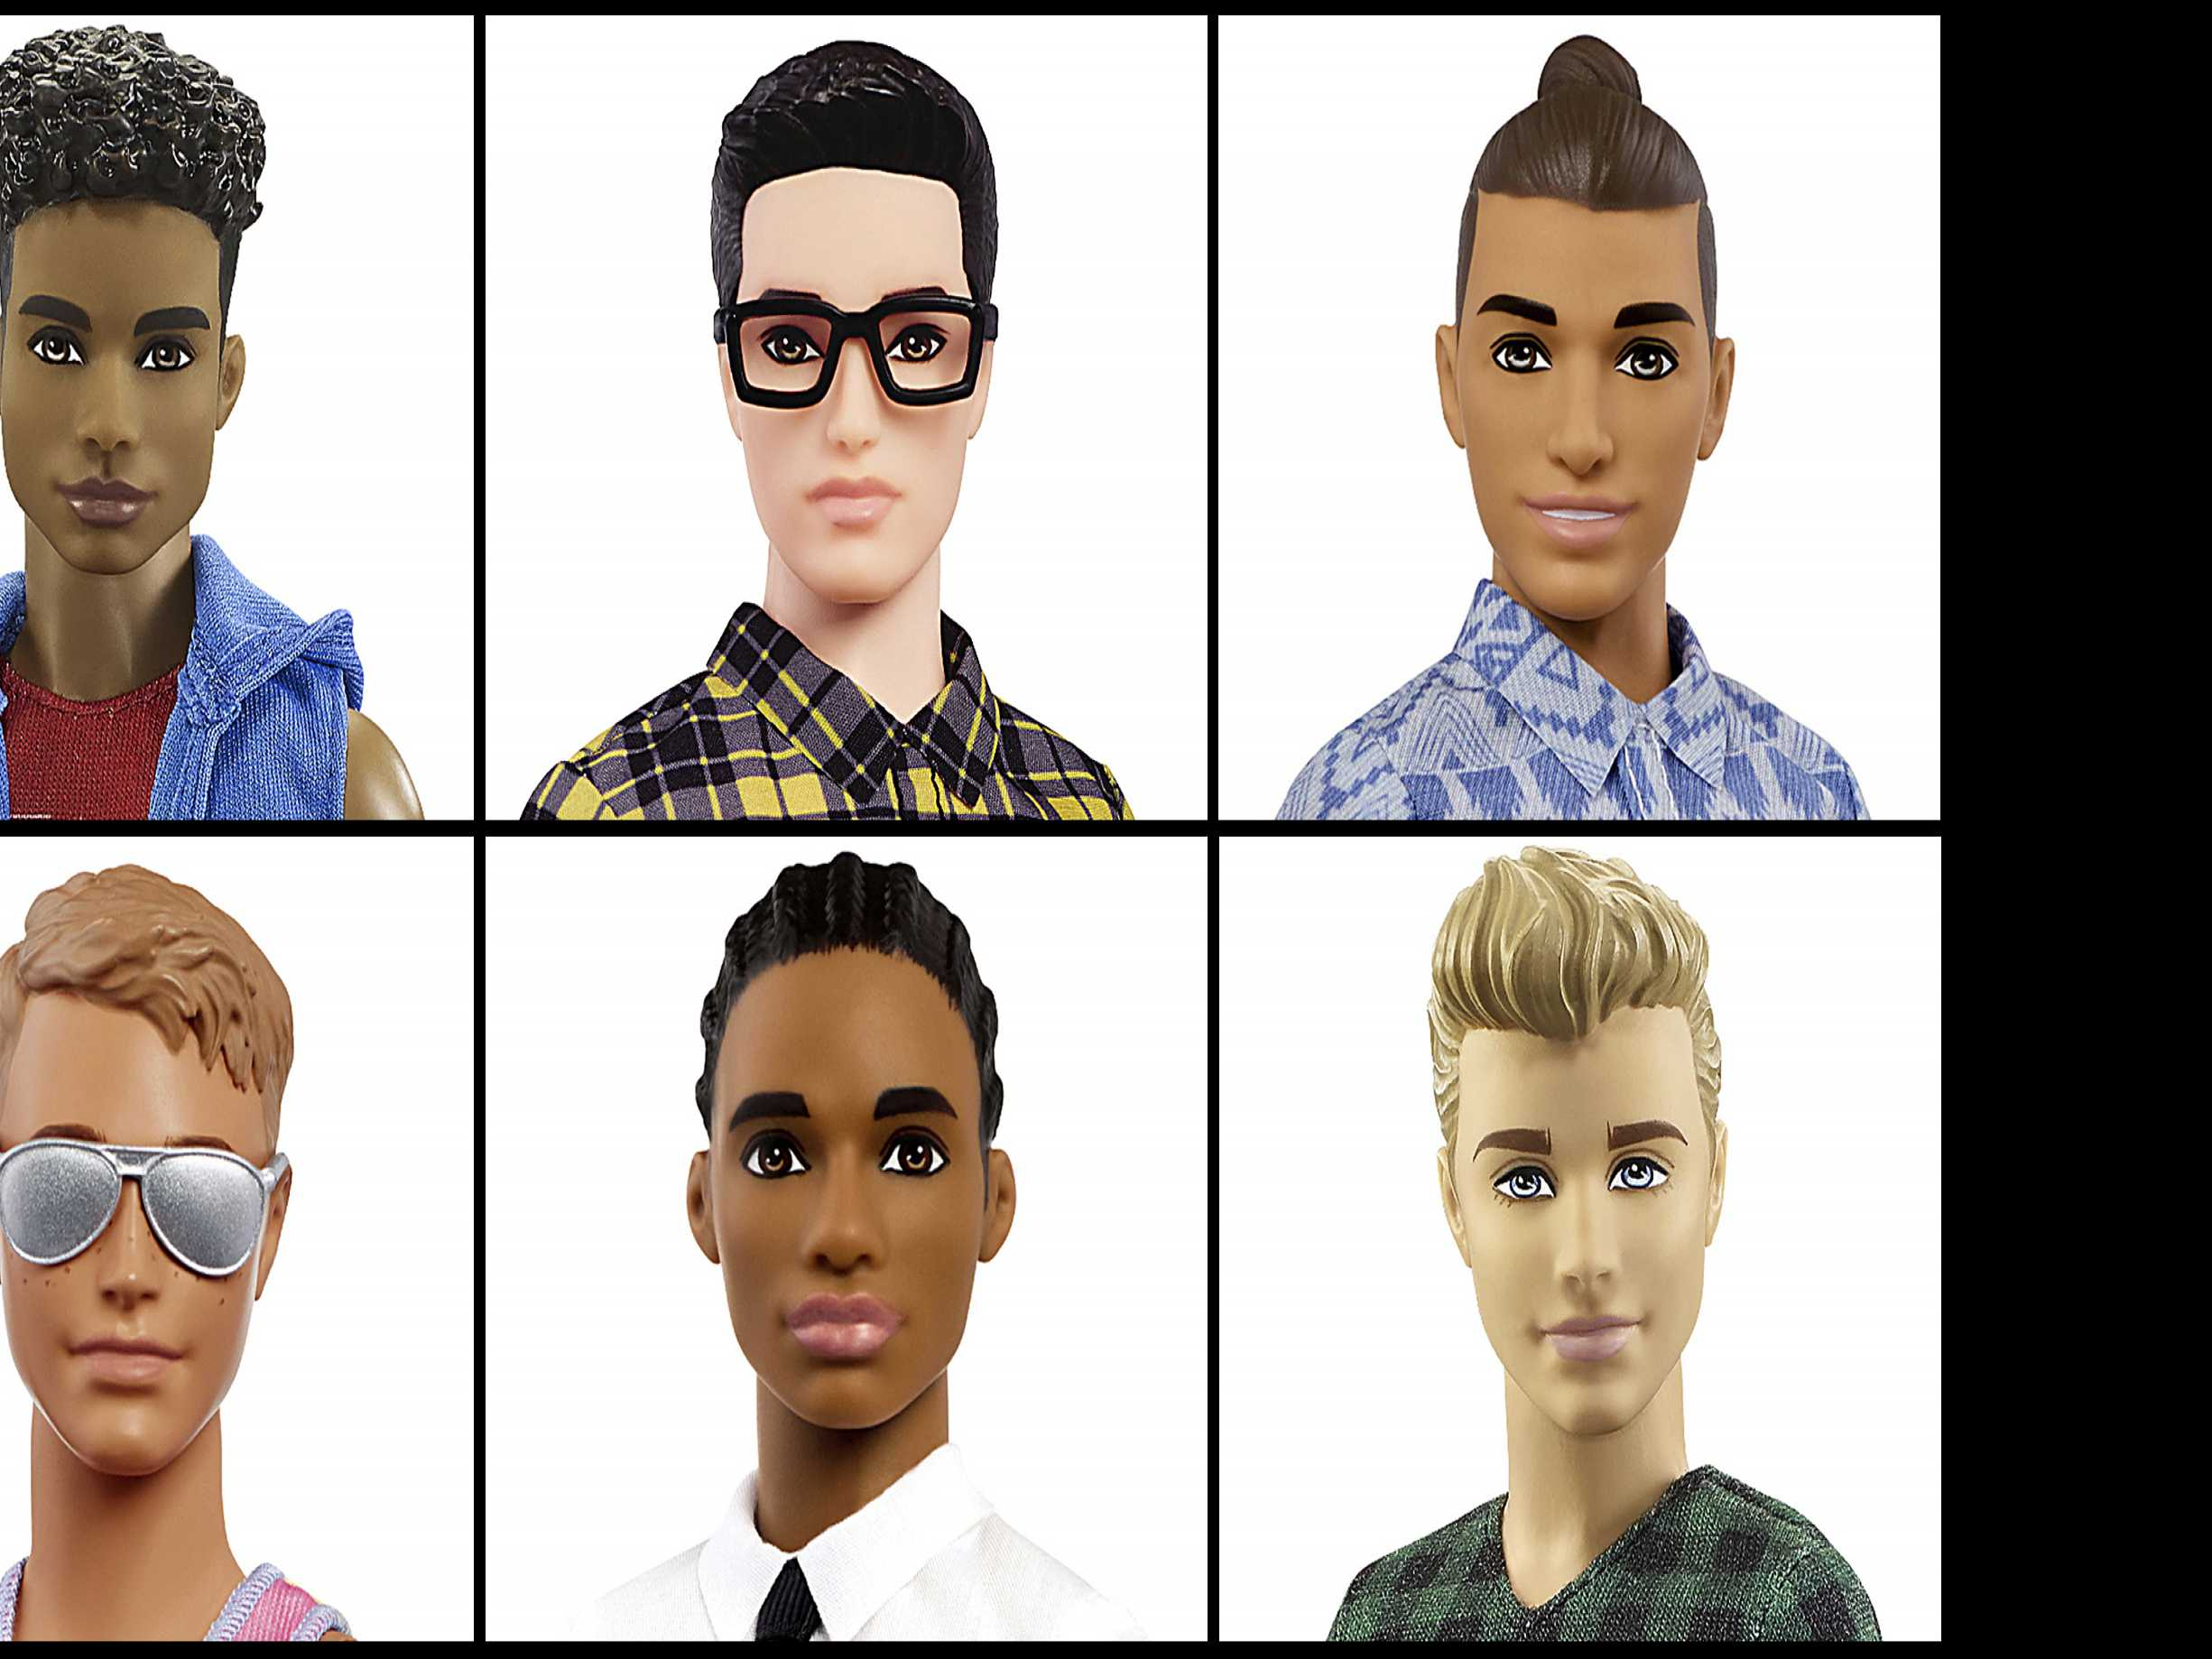 Barbie's Companion Ken Gets New Beefy Look